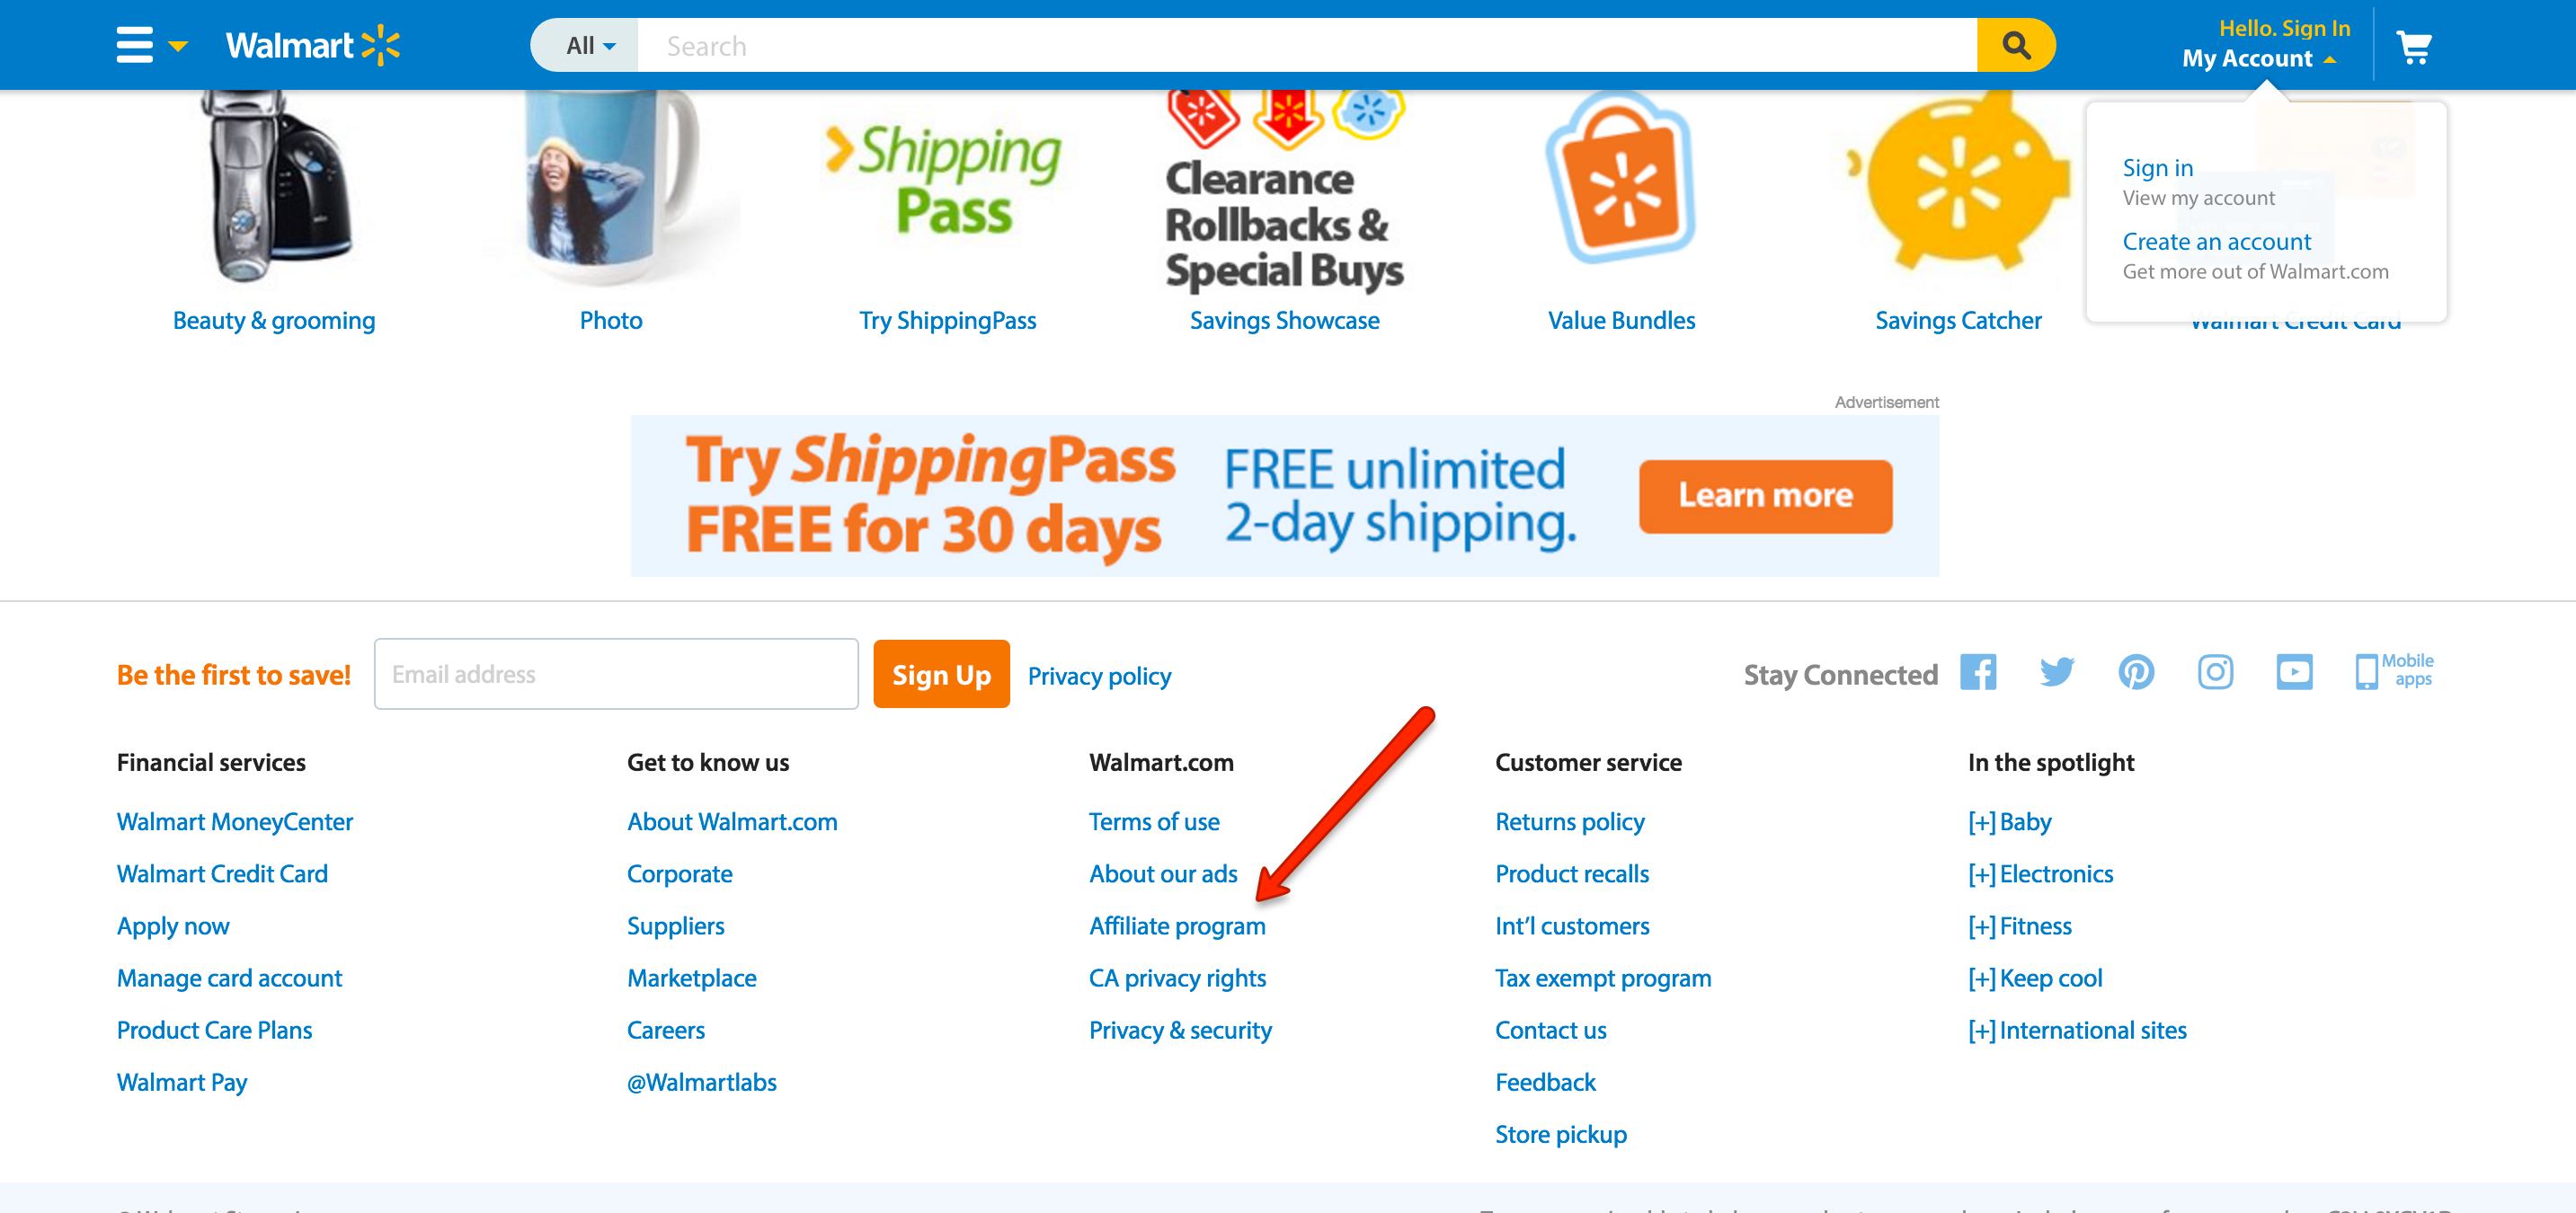 The Walmart footer with an affiliate program link